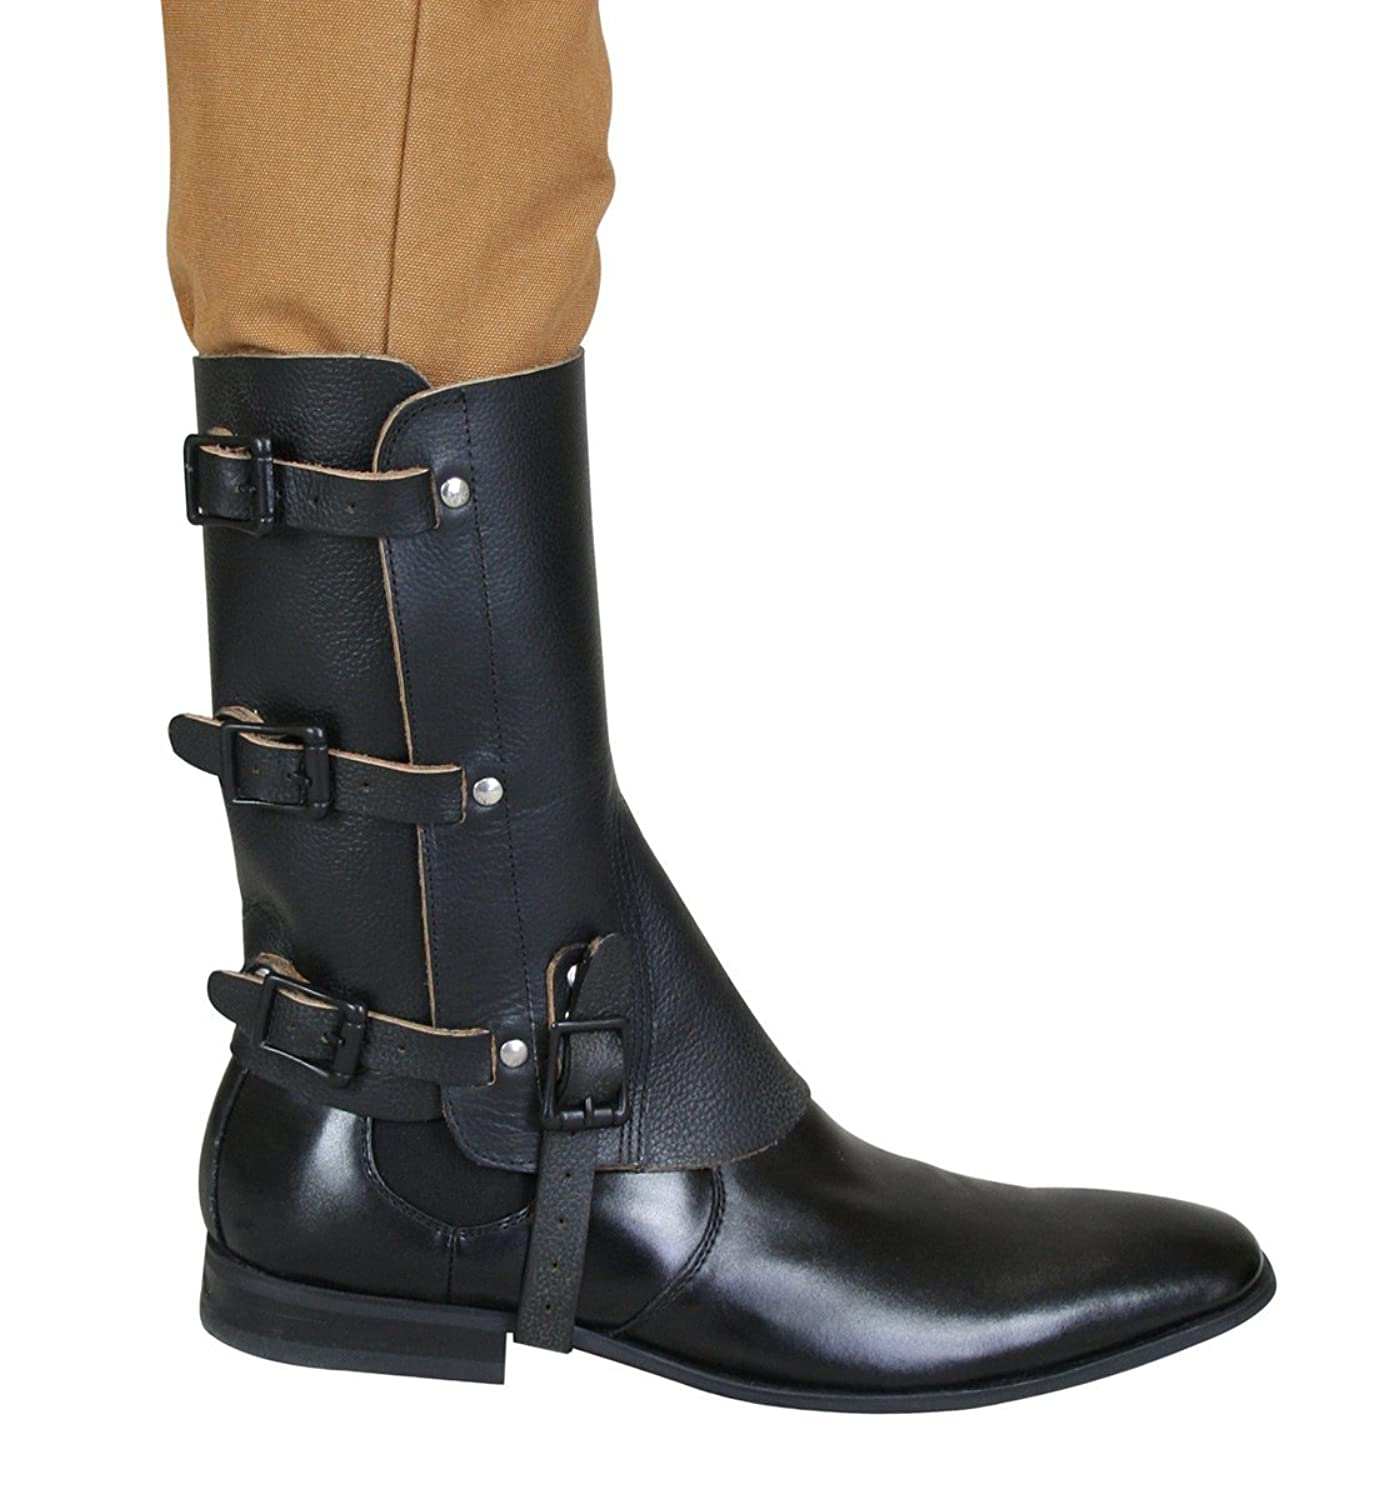 Vintage Boots- Winter Rain and Snow Boots Historical Emporium Mens Deluxe Leather Military Gaiters $49.95 AT vintagedancer.com